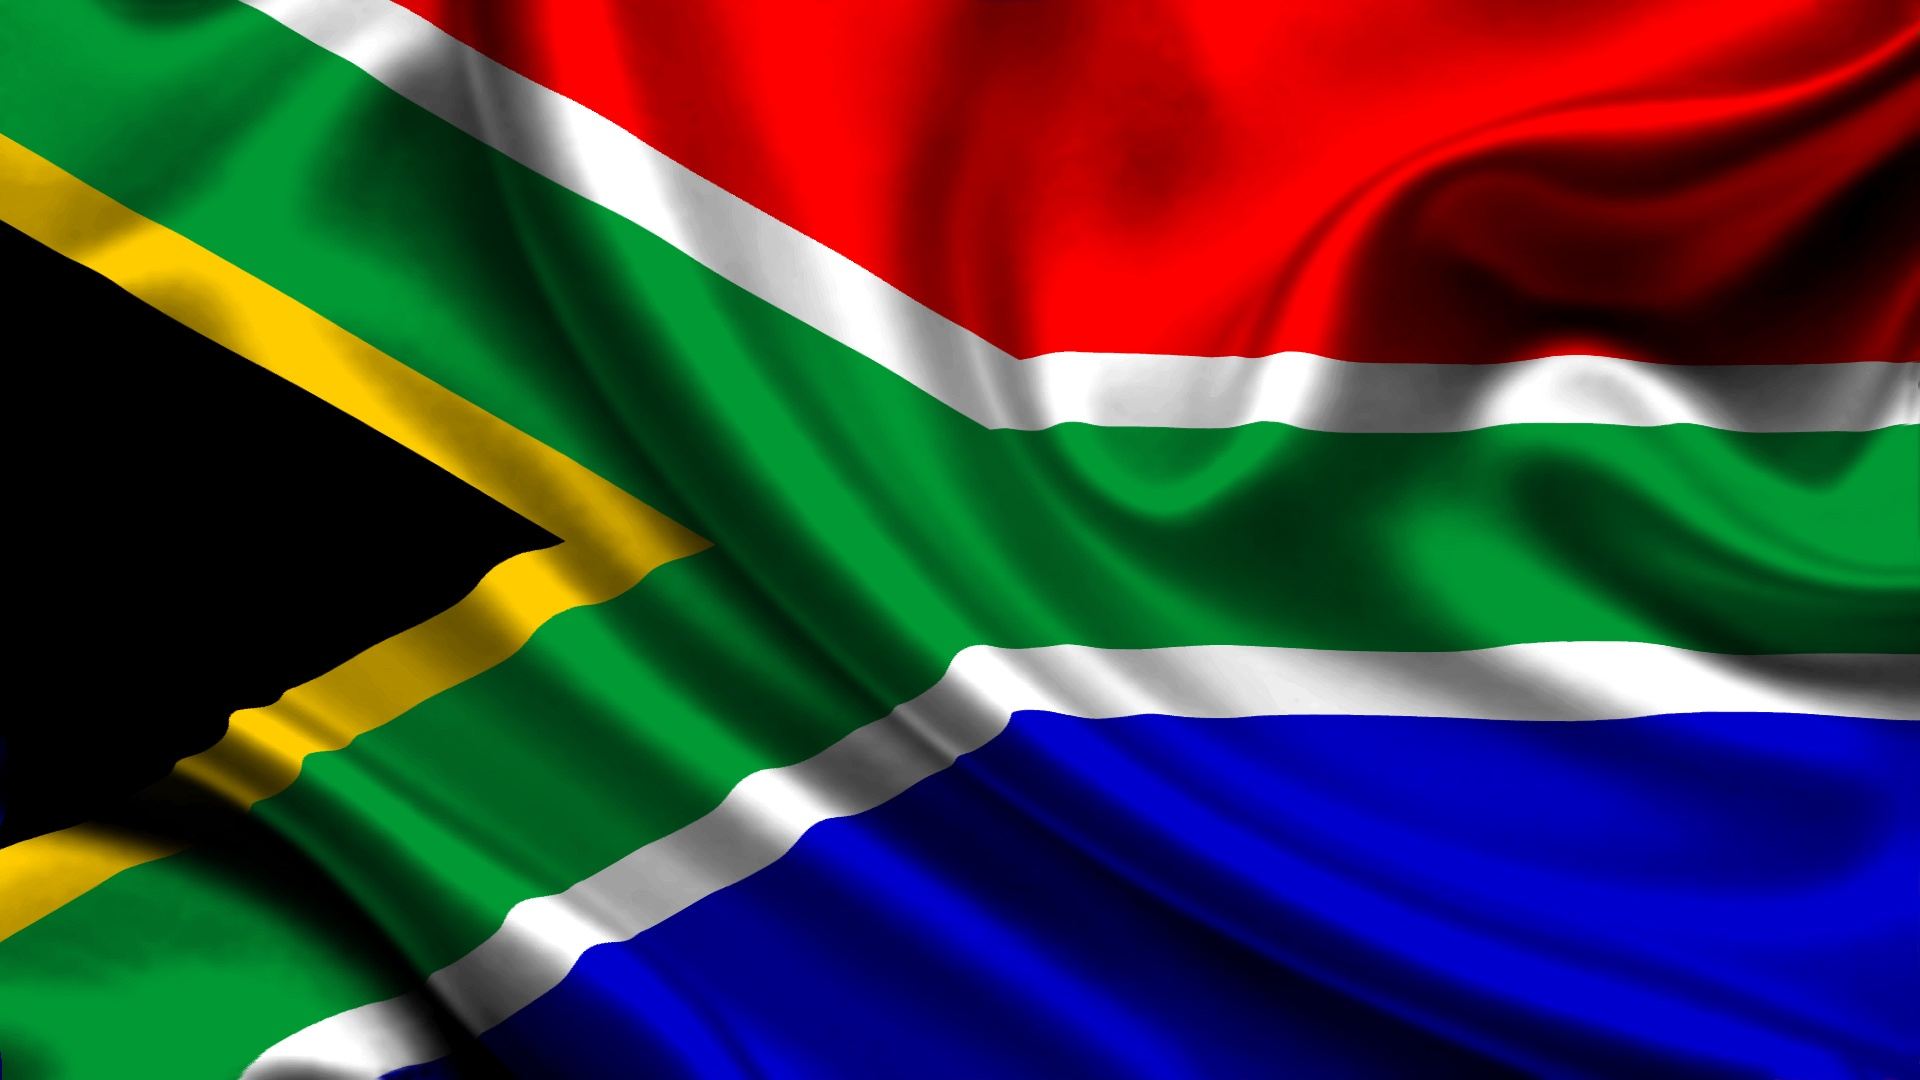 No-strange-media-flag-of-south-africa